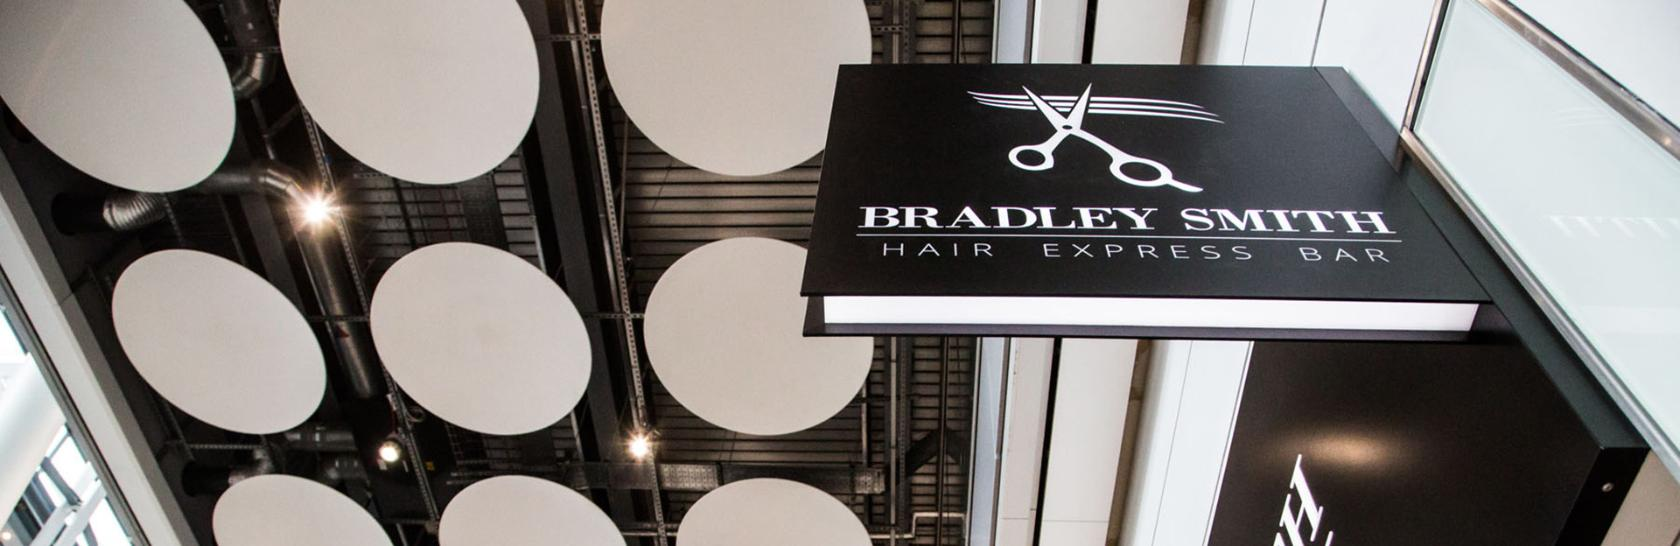 Bradley Smith Hair Express Bar